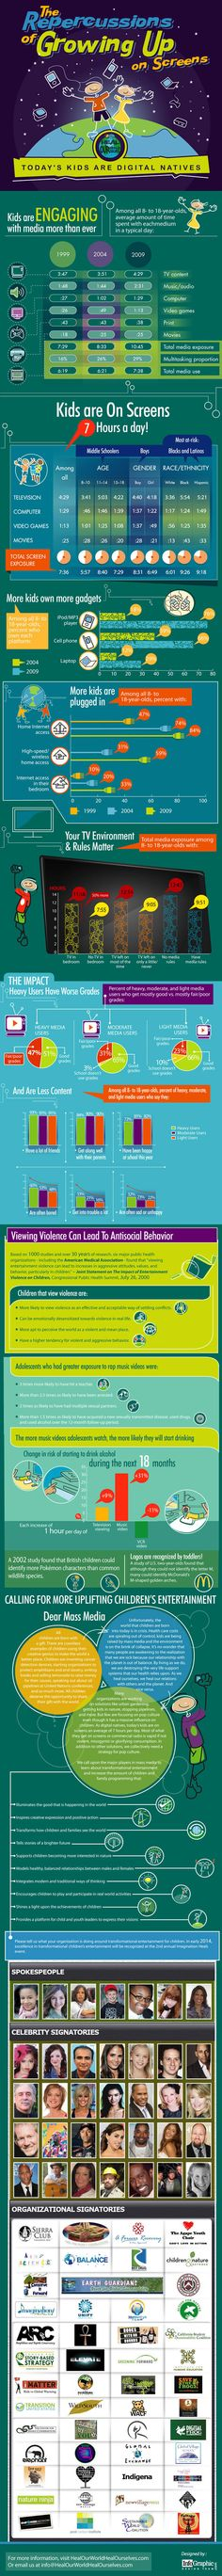 The #Repercussions of Growing Up on Screens #Kids.